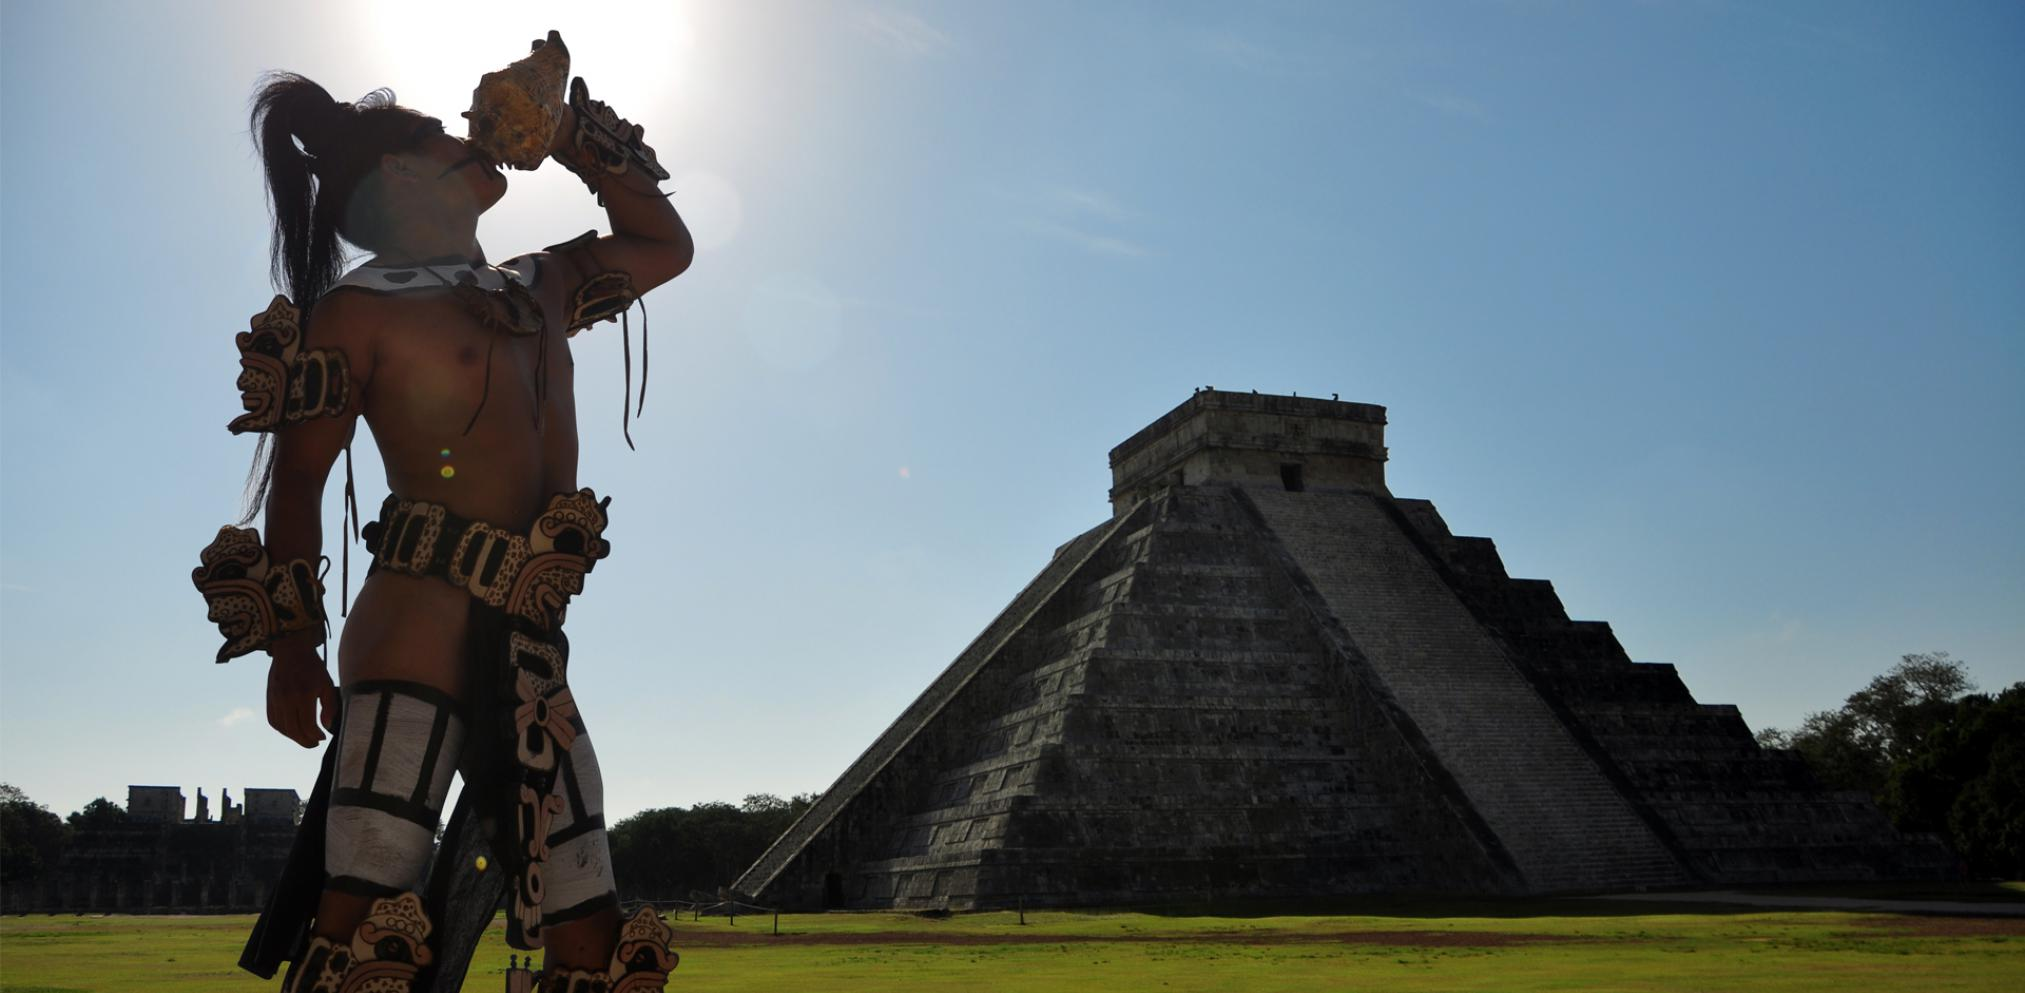 Quintana Roo Chichen itza visit Yucatan MexVax mexican hotels and resorts